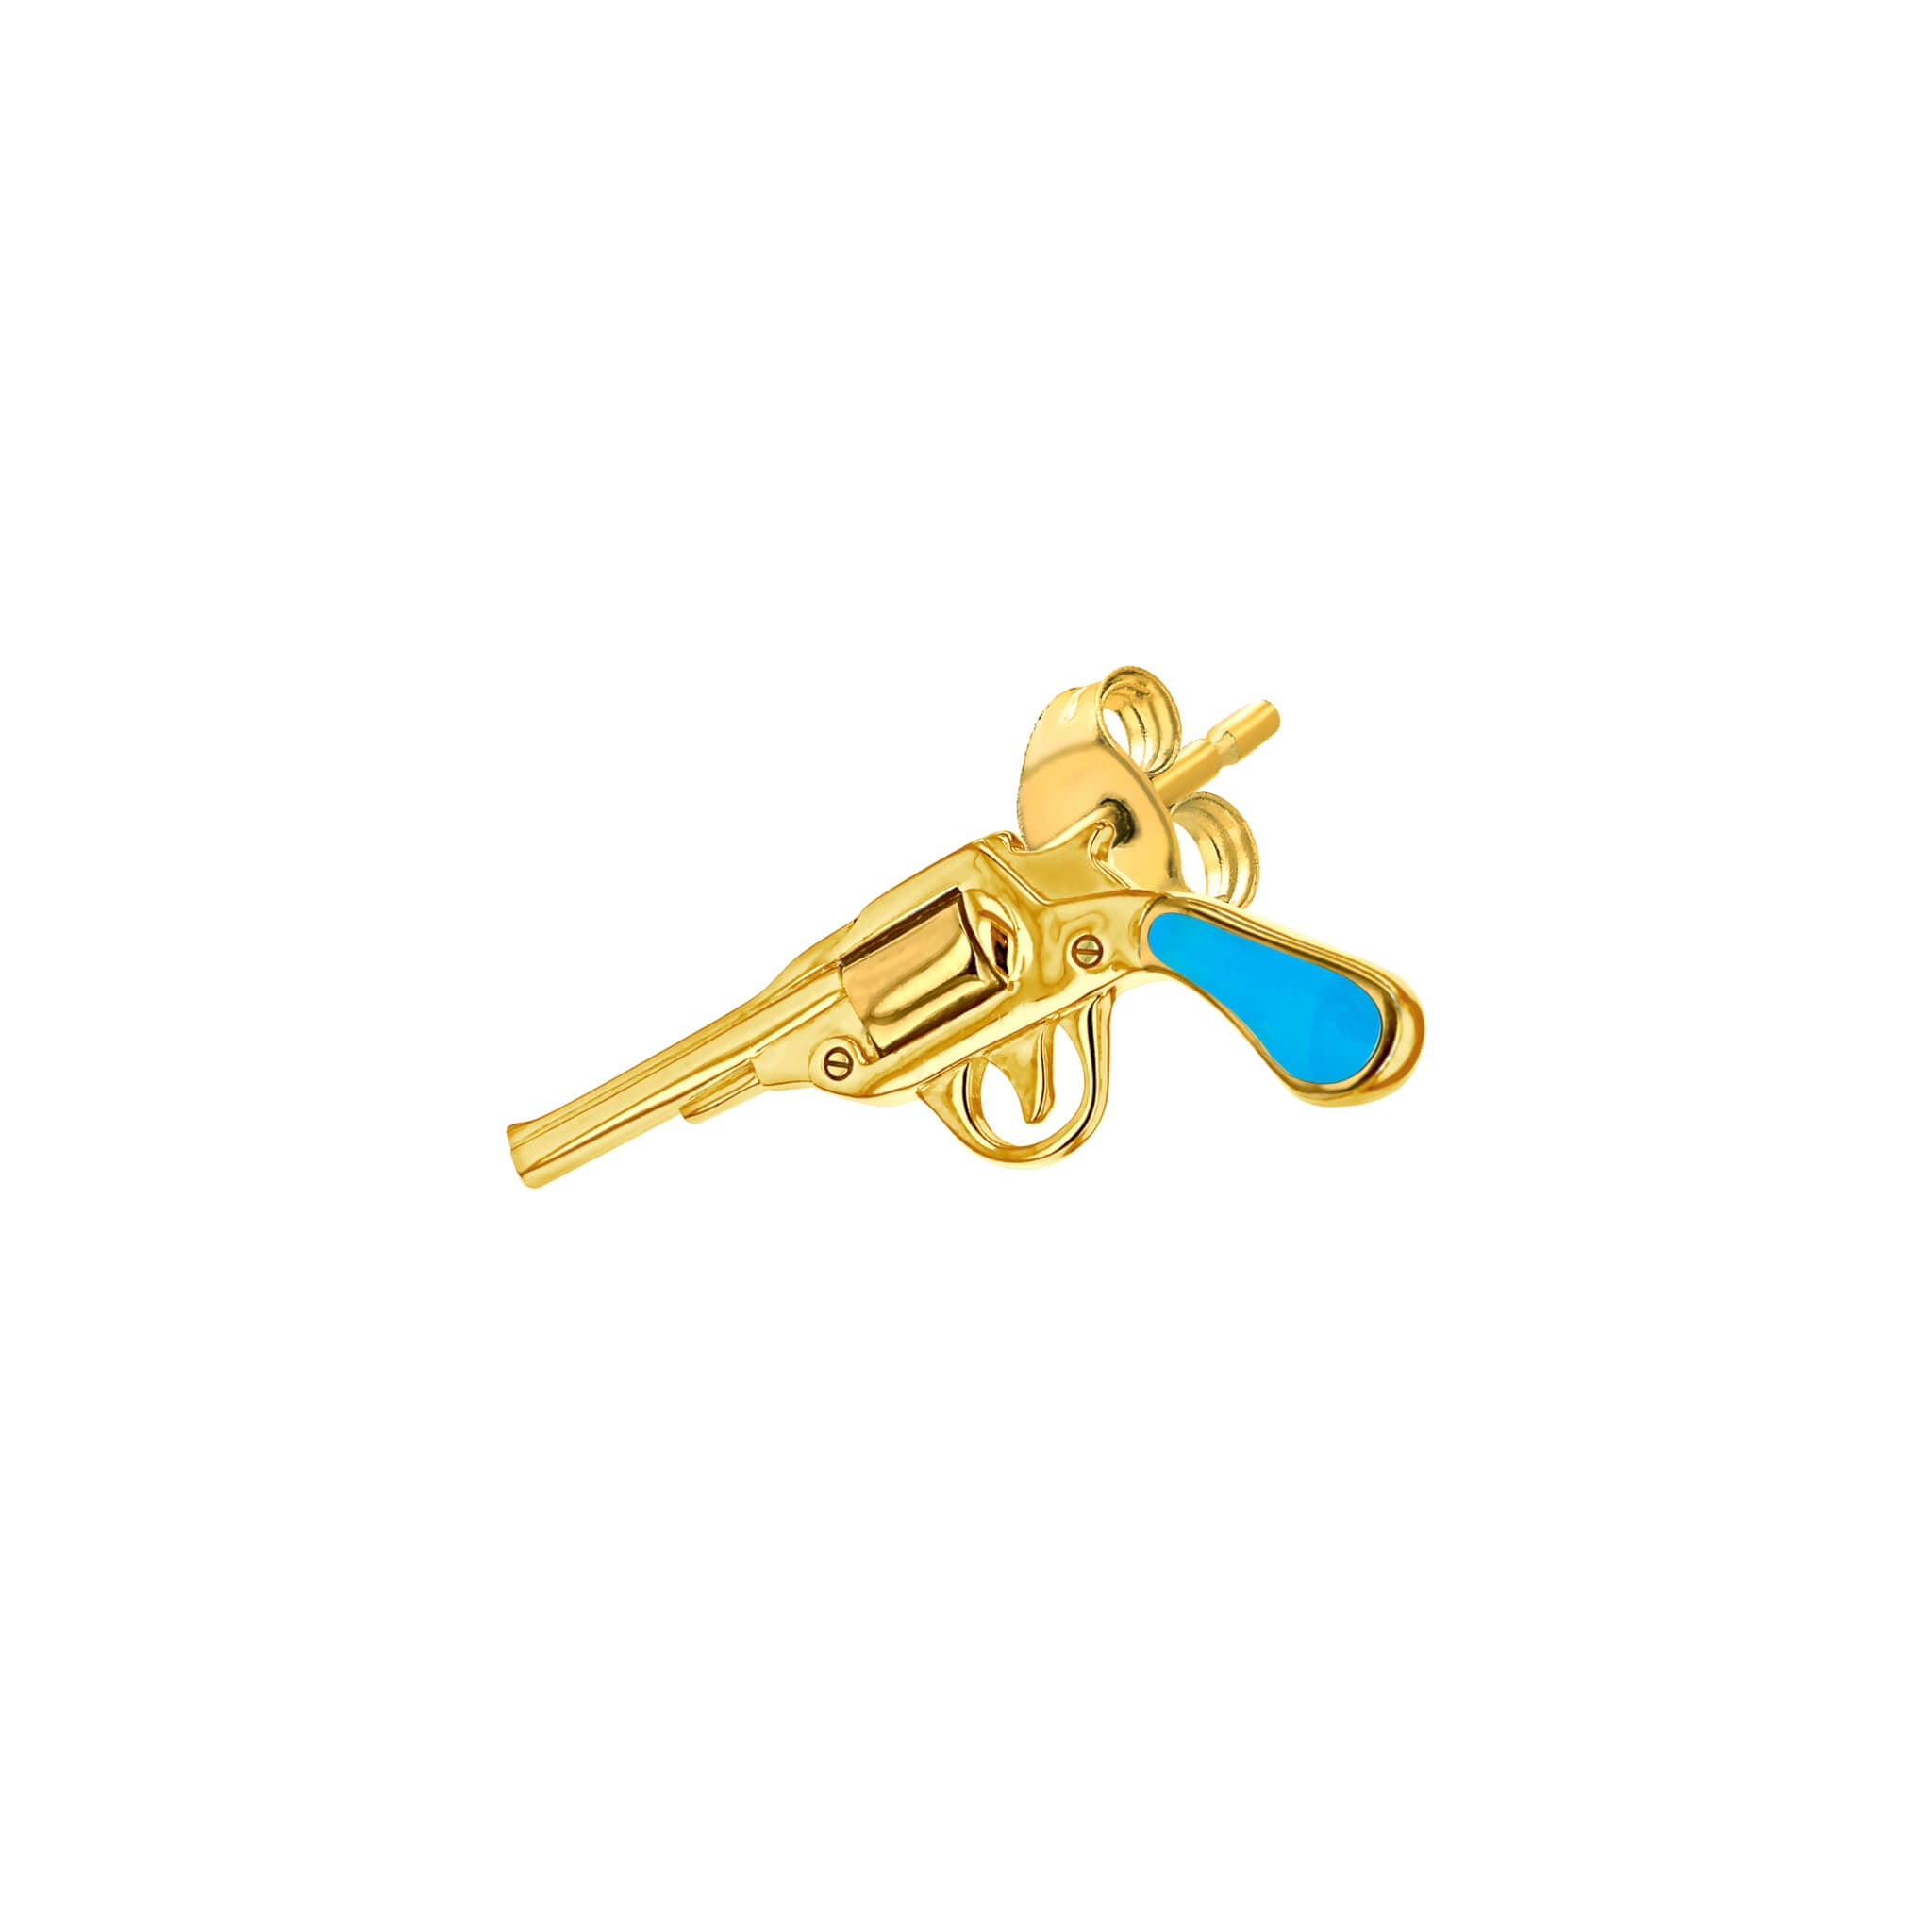 Pistol Stud Earring in Turquoise and Gold